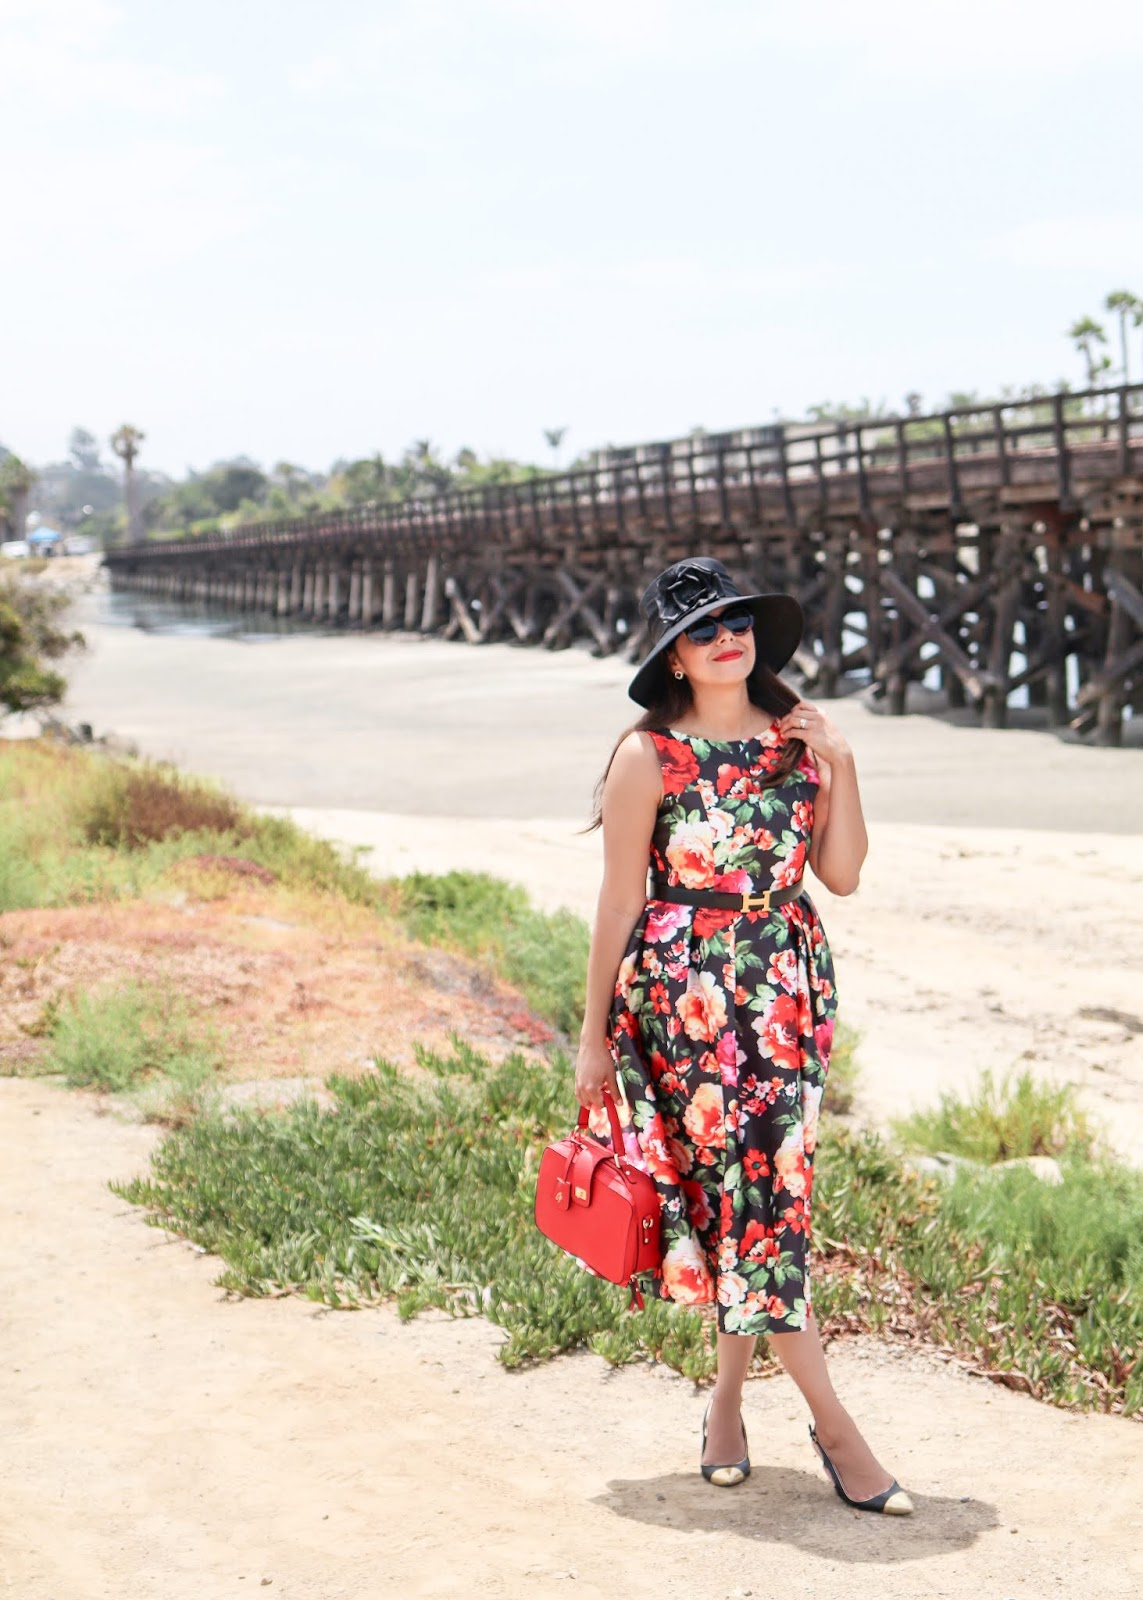 del mar opening day 2018, san diego blogger goes to del mar opening day, san diego fashionable events 2018